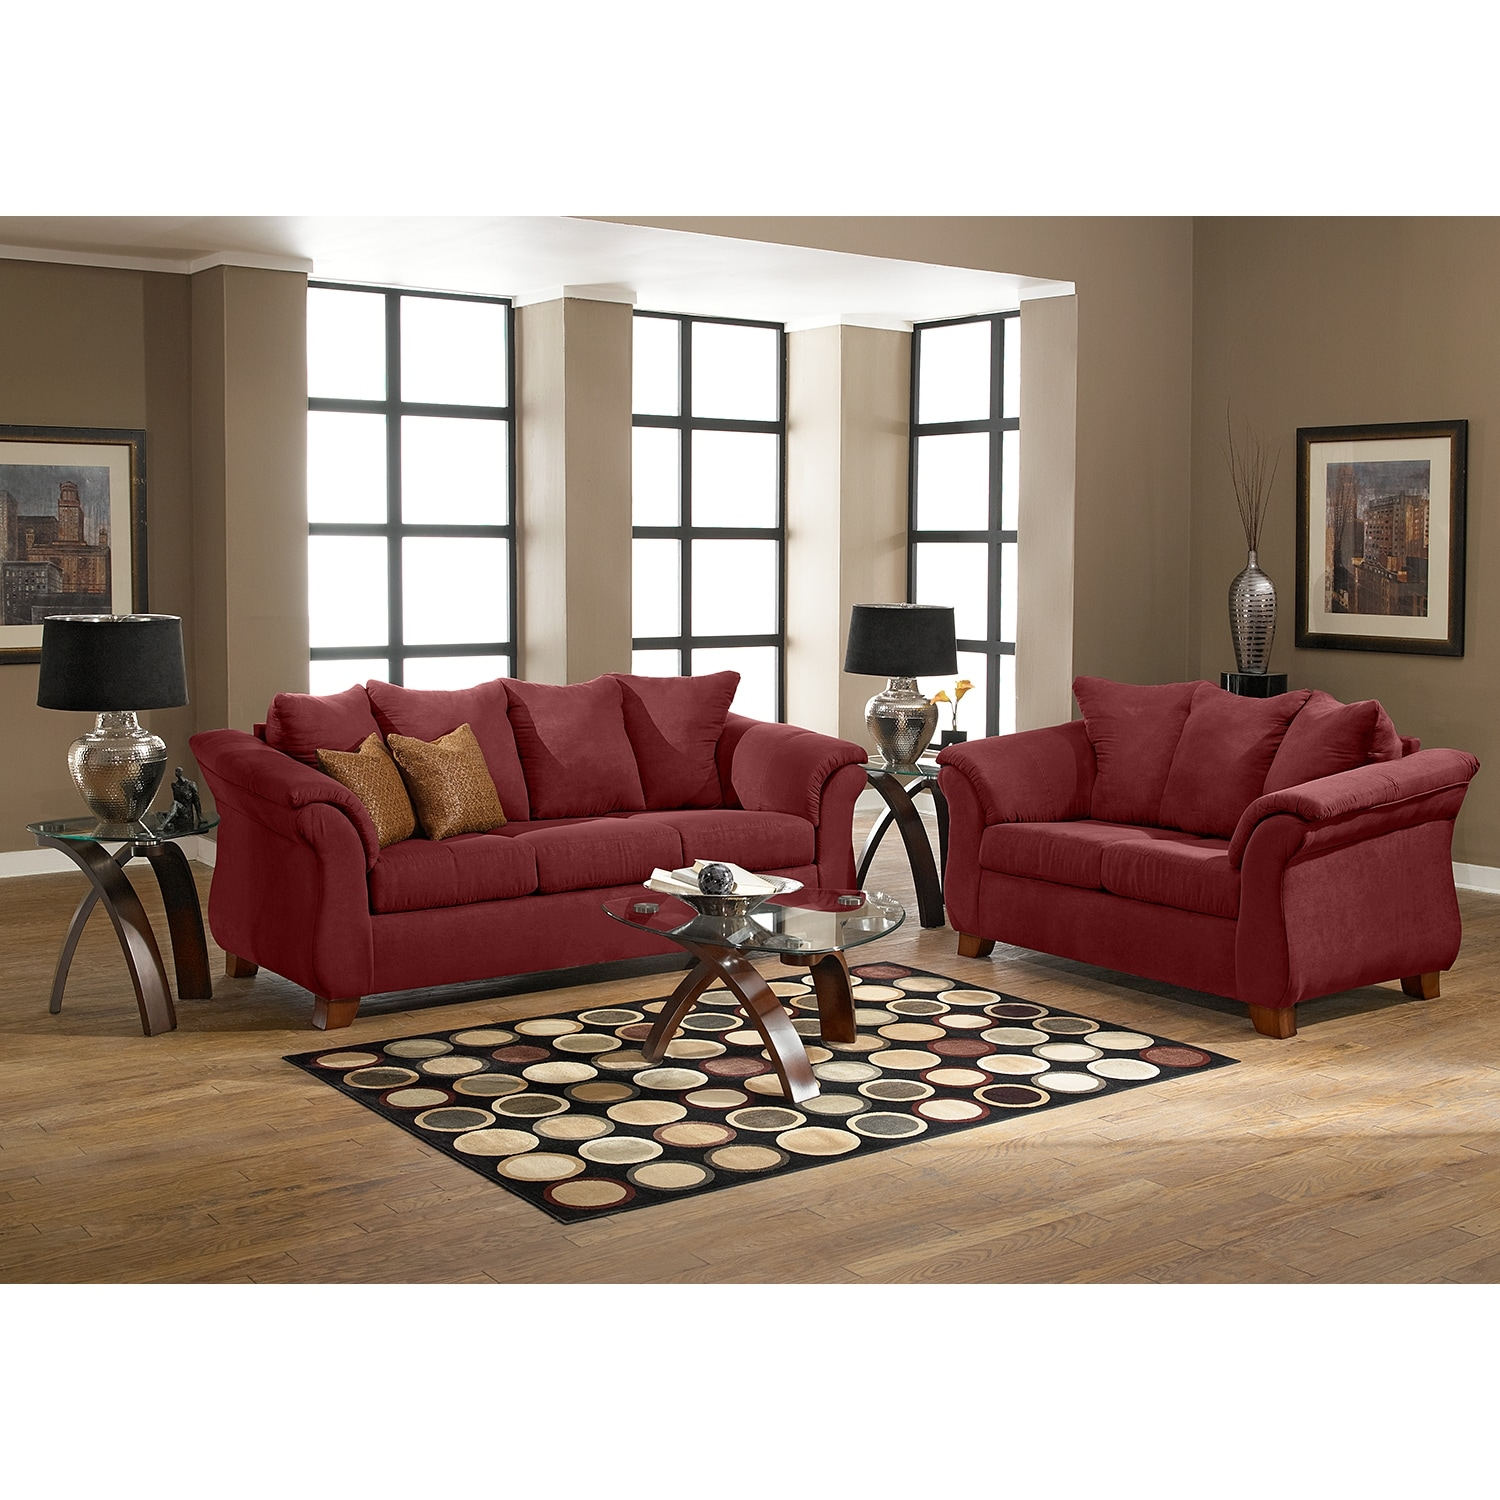 Adrian Red Sofa Value City Furniture